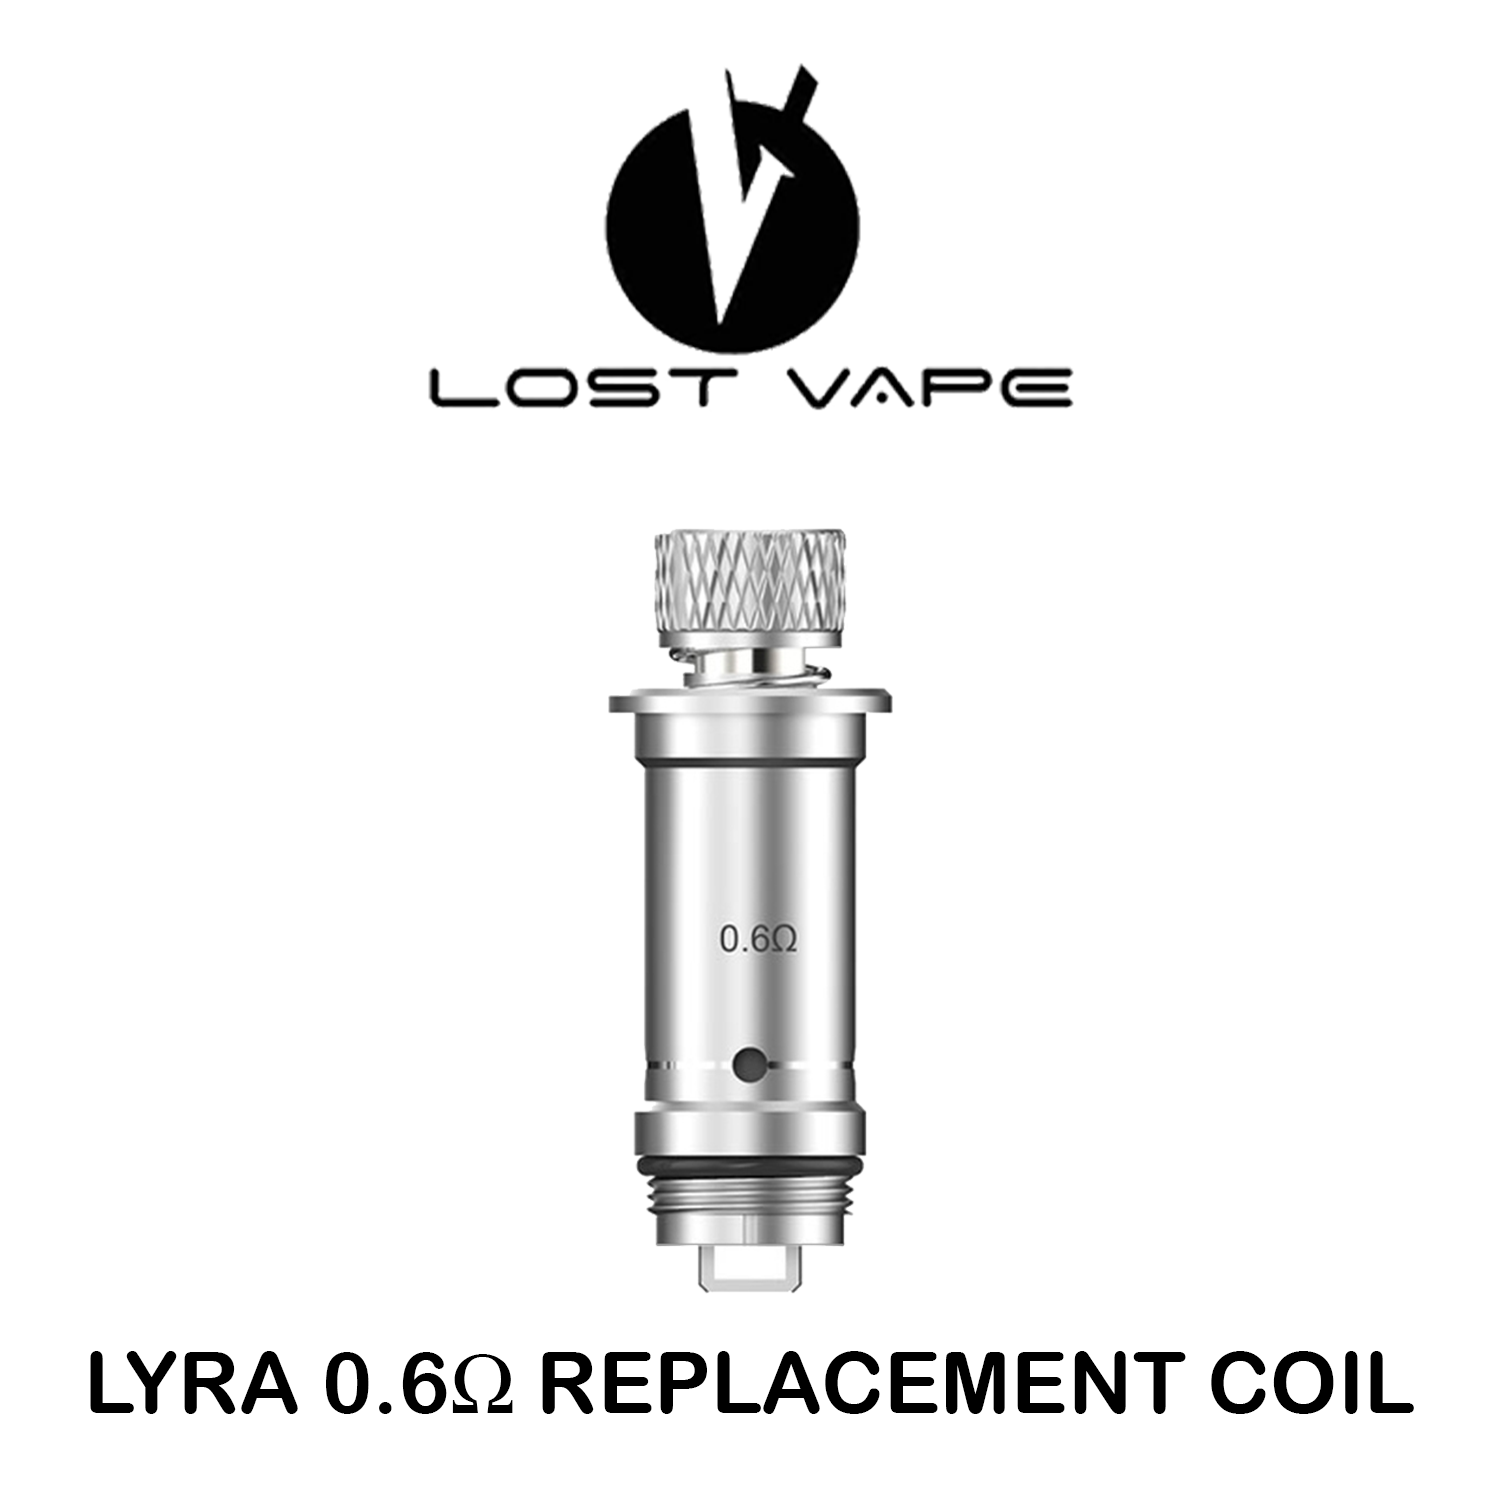 LOST VAPE LYRA REPLACEMENT COIL (Price Per Coil) - Boss Vapes